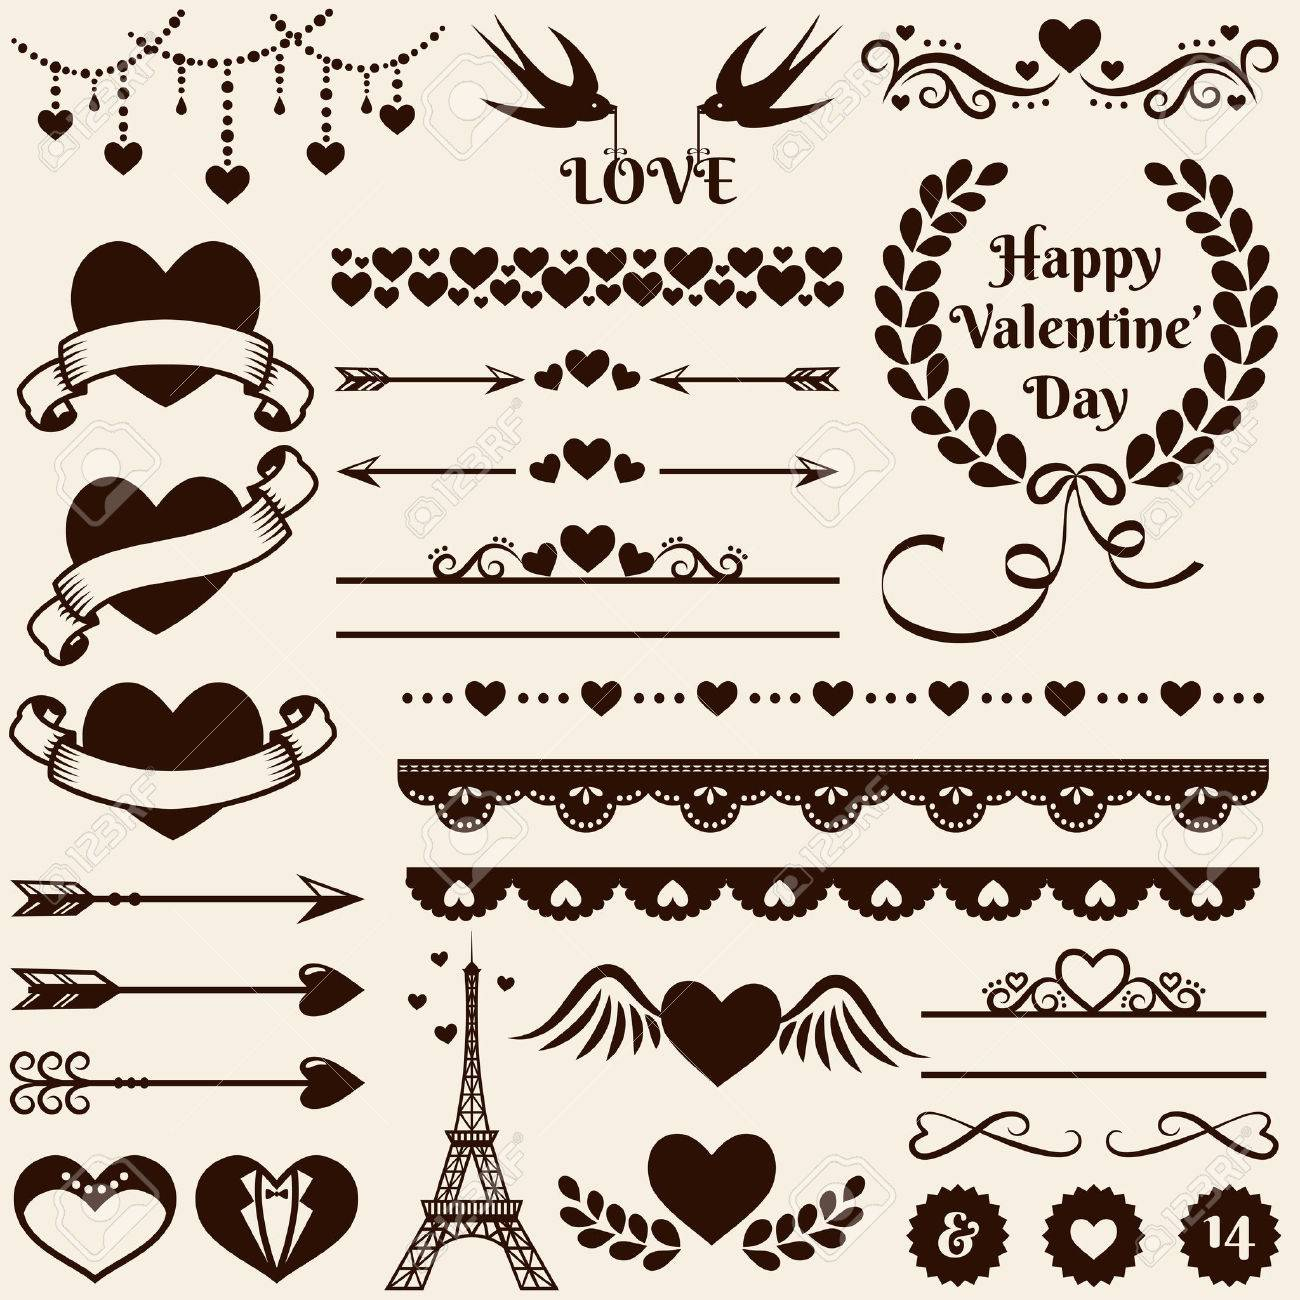 Love romance and wedding decorations set collection of elements love romance and wedding decorations set collection of elements for valentines greeting cards junglespirit Images